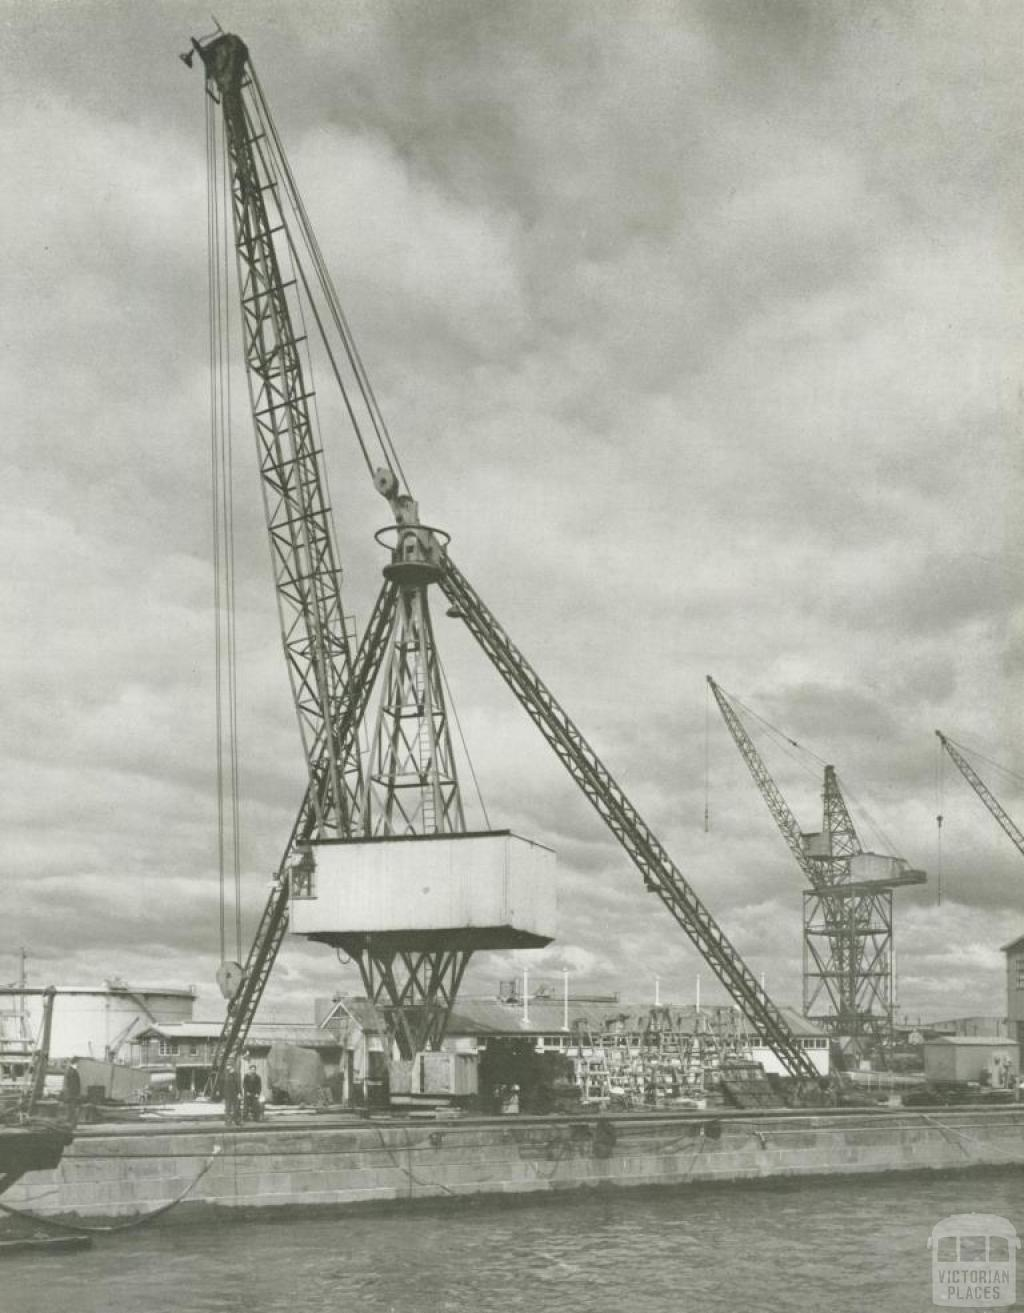 Jib-Crane, Williamstown naval dockyard, 1956